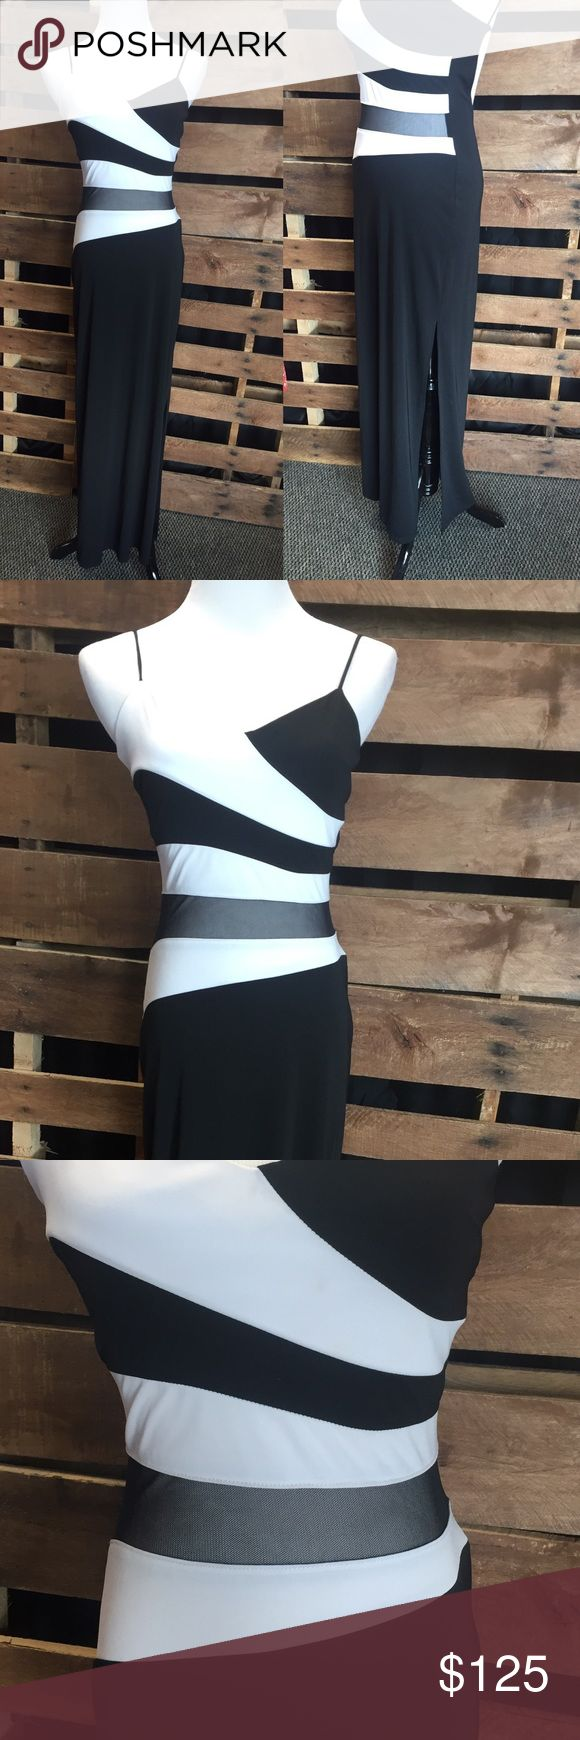 Black/white Homecoming or Prom party dress So cute! Sheer strip on the front, ties in the back like a bikini top, side left skit. Popular Jersey material. Tag says size 7/8 Be Smart Dresses Backless